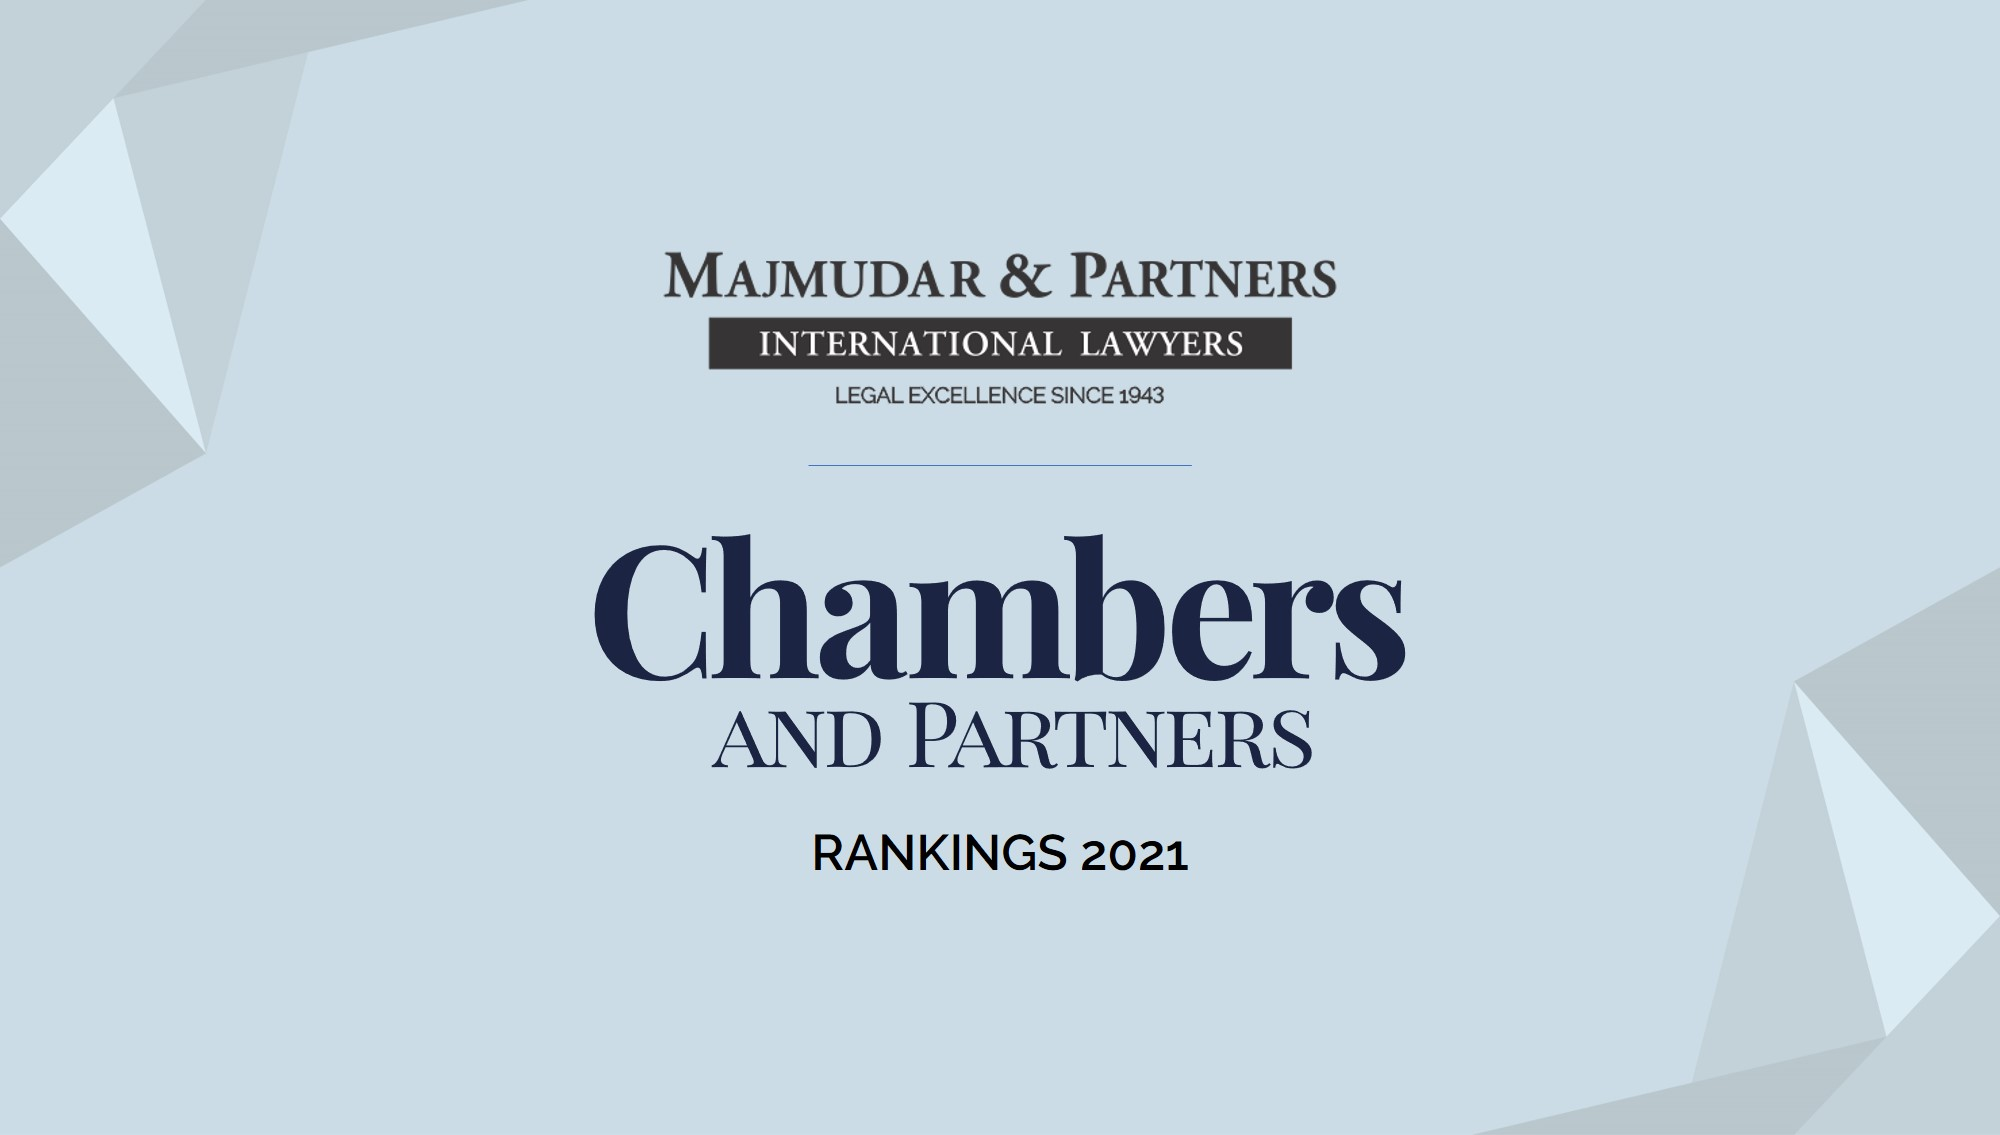 Majmudar & Partners recognized among Chambers & Partners 2021 law firm rankins